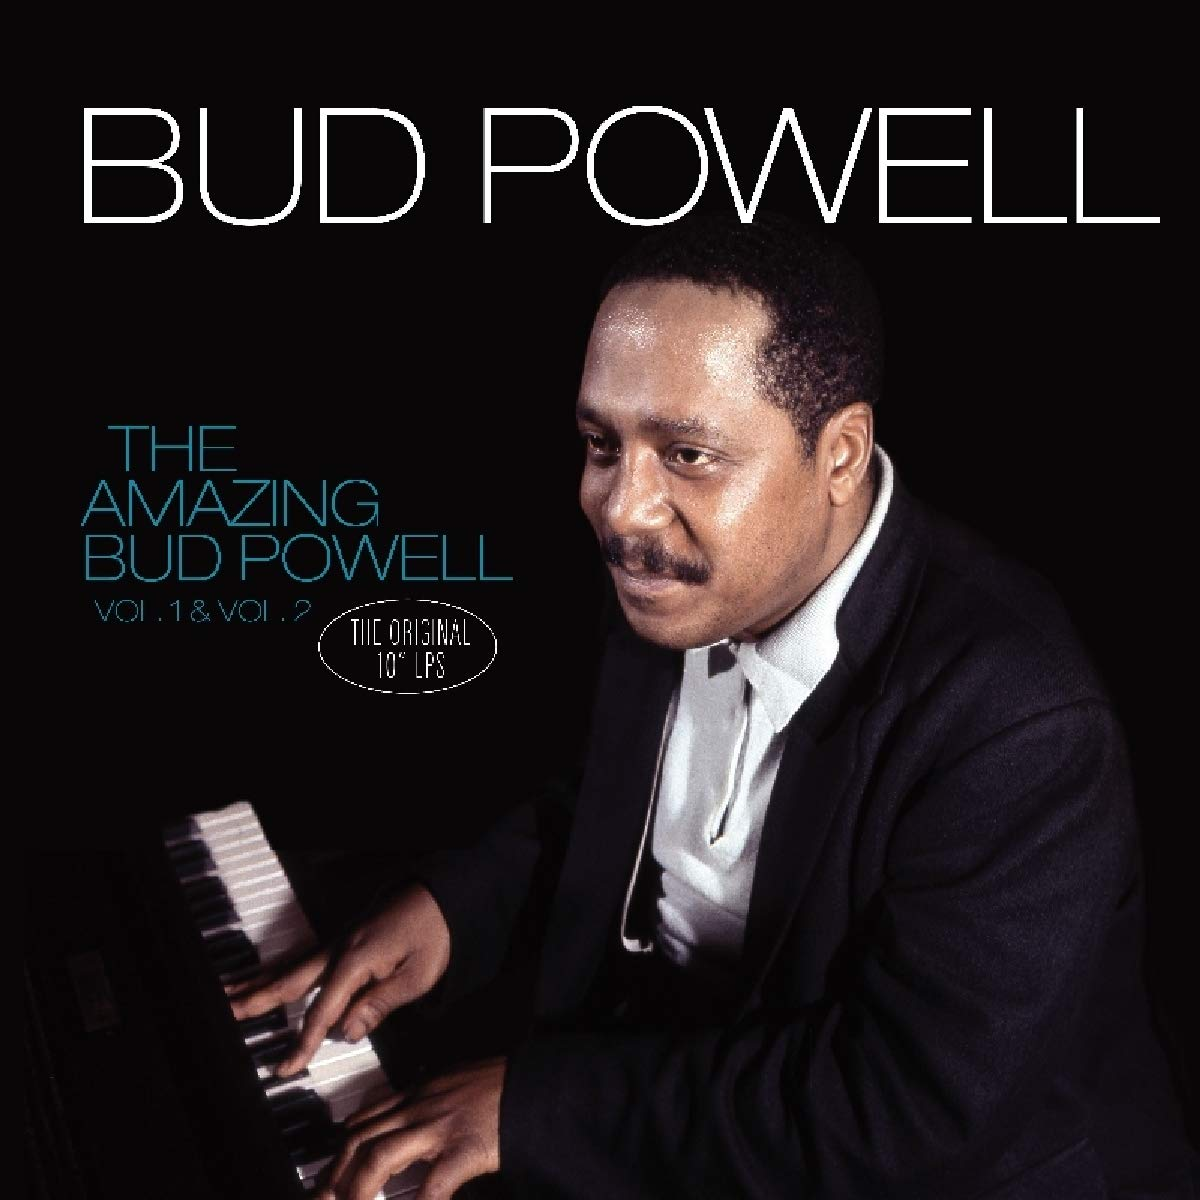 Bud Powell - Amazing Bud Powell Vol 1 & 2